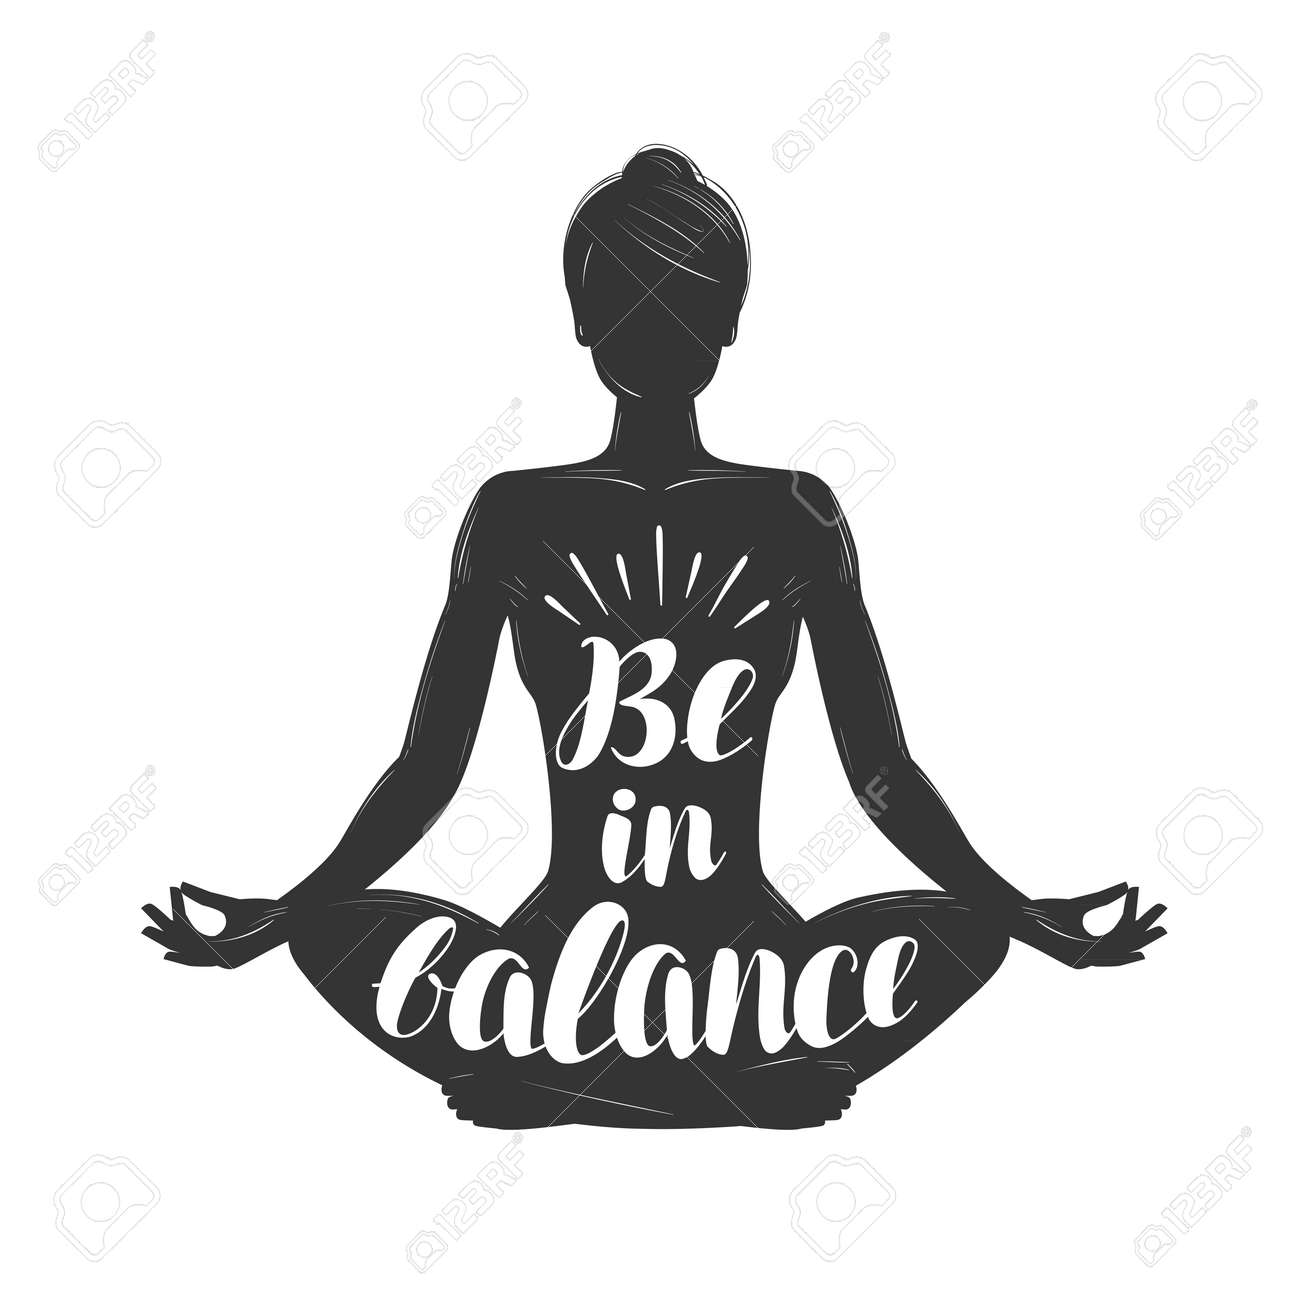 Silhouette Of Girl Sitting In Lotus Pose Yoga Meditation Concept Royalty Free Cliparts Vectors And Stock Illustration Image 100254670